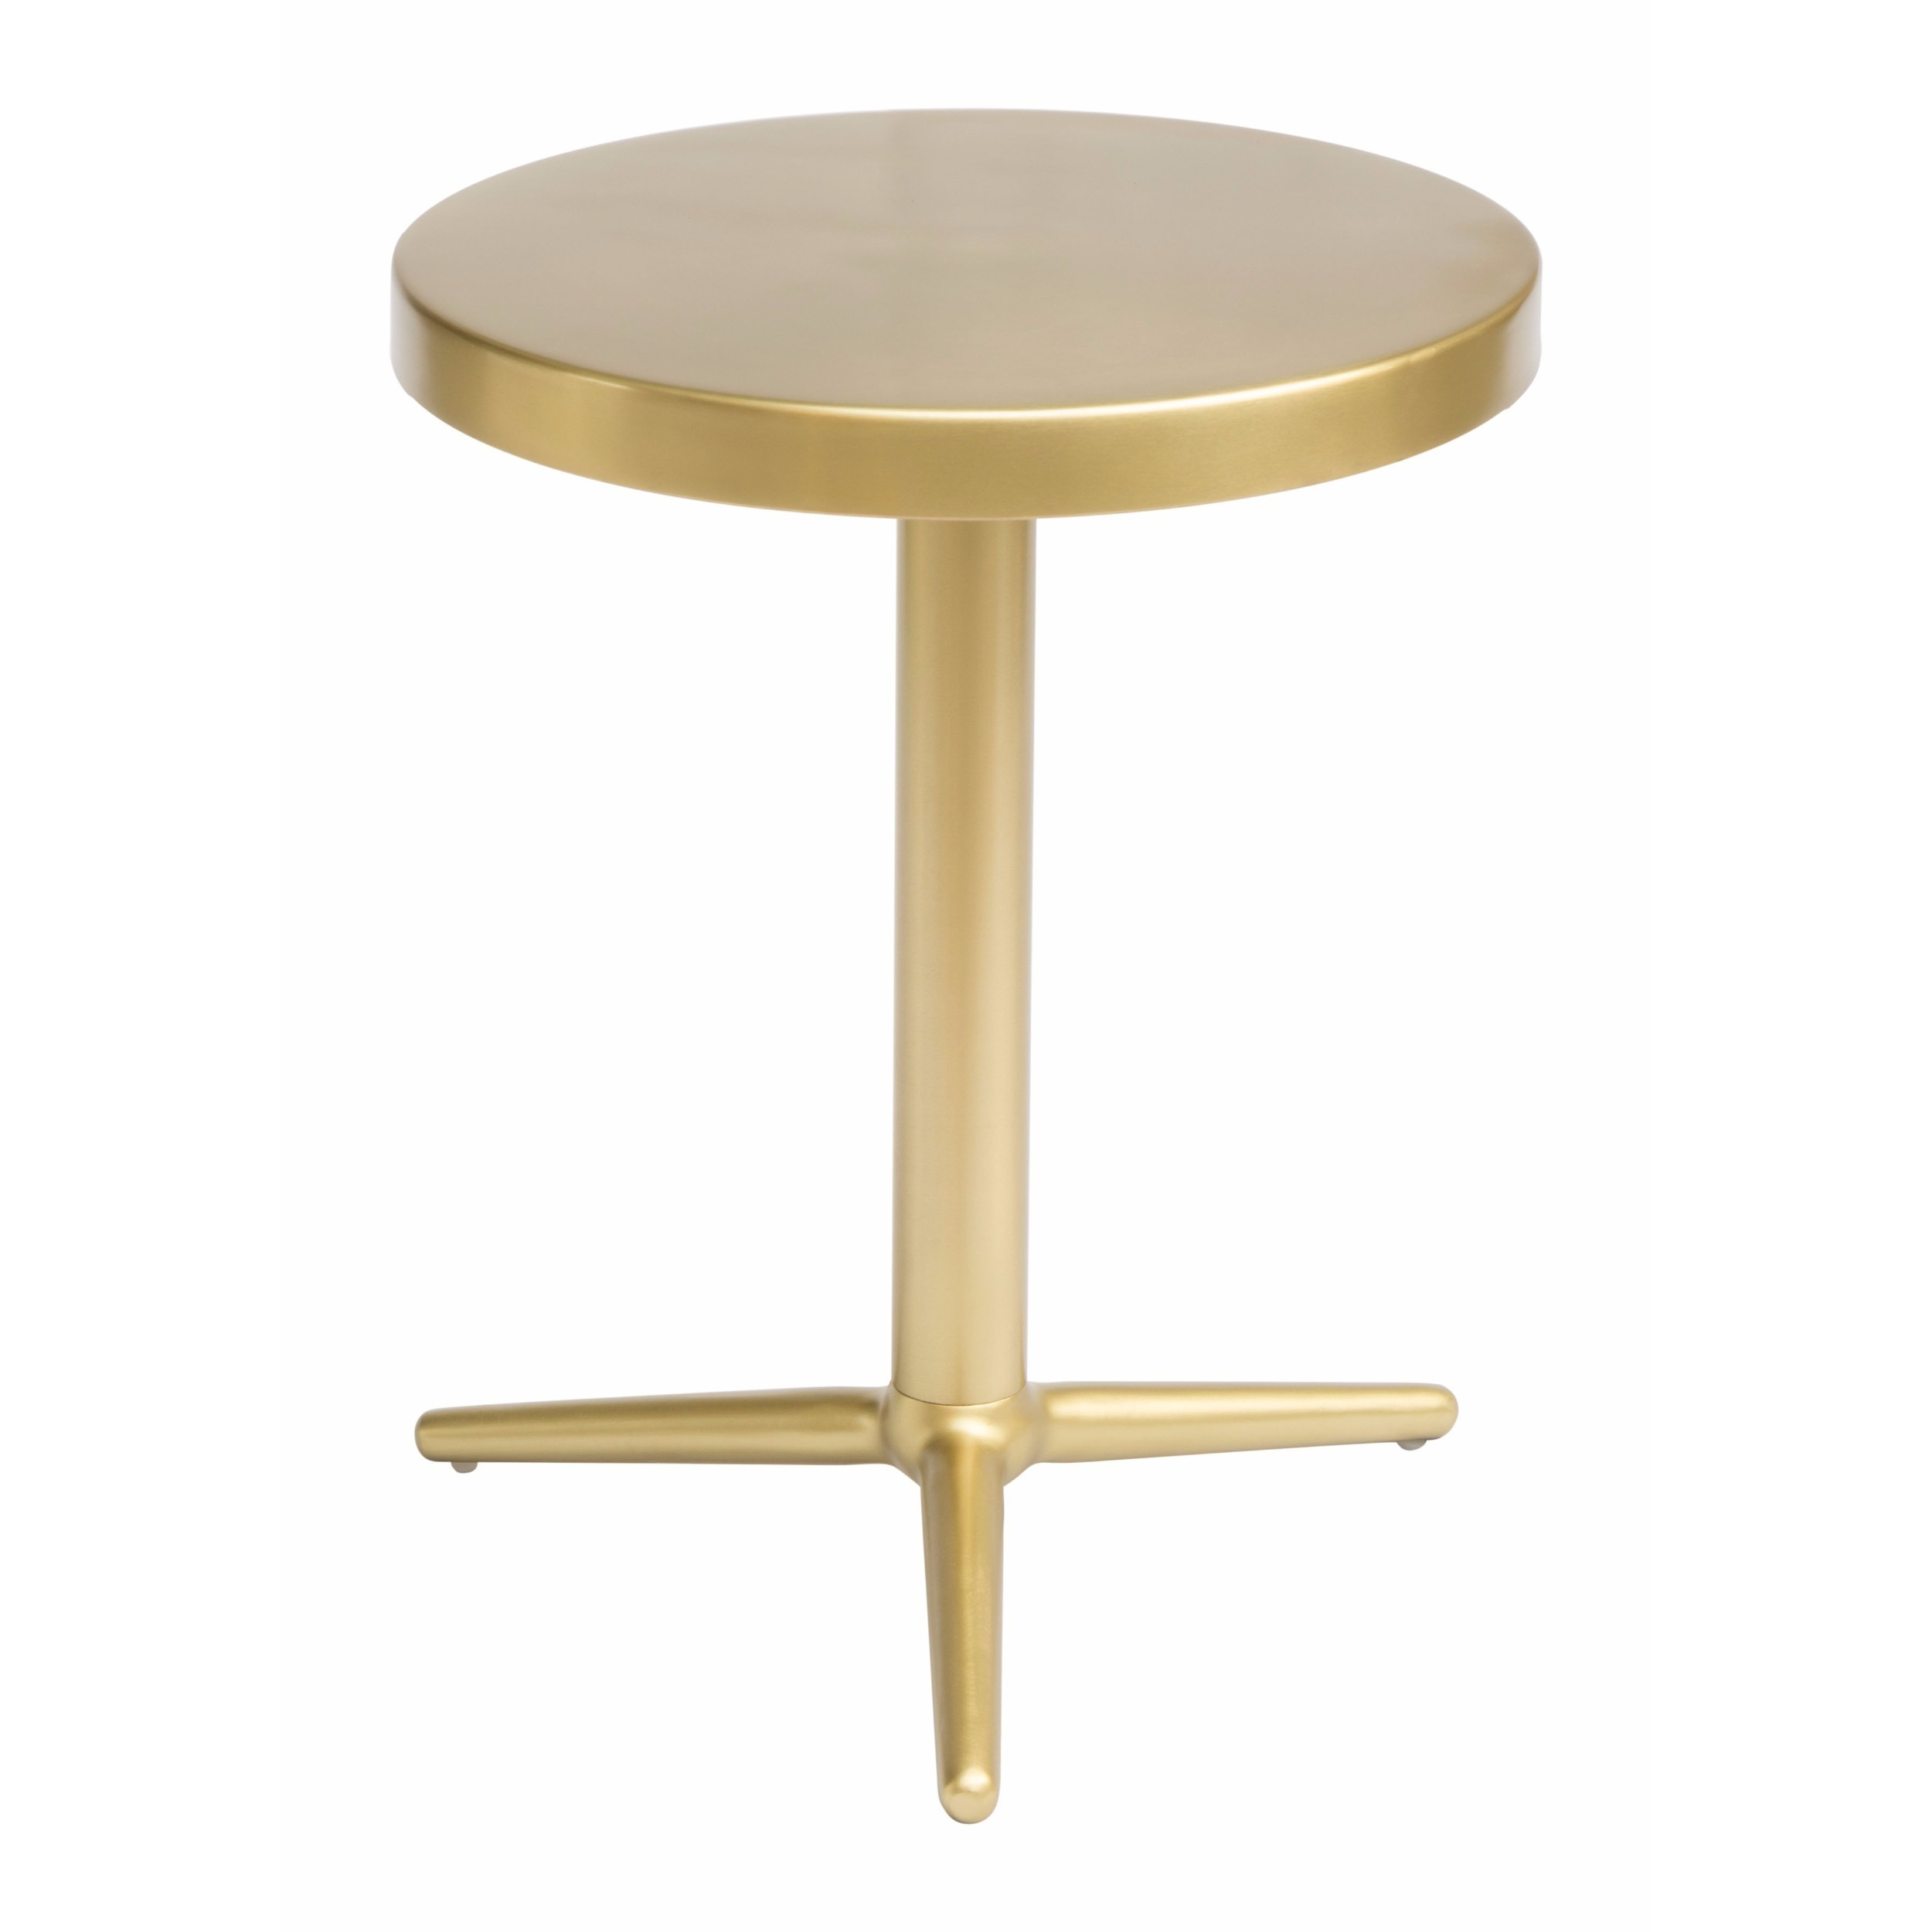 derby accent table brass zuo modern furniture gold end target glass coffee tall round legs room essentials comforter black lamp diy side cabinet long small patio peva tablecloth